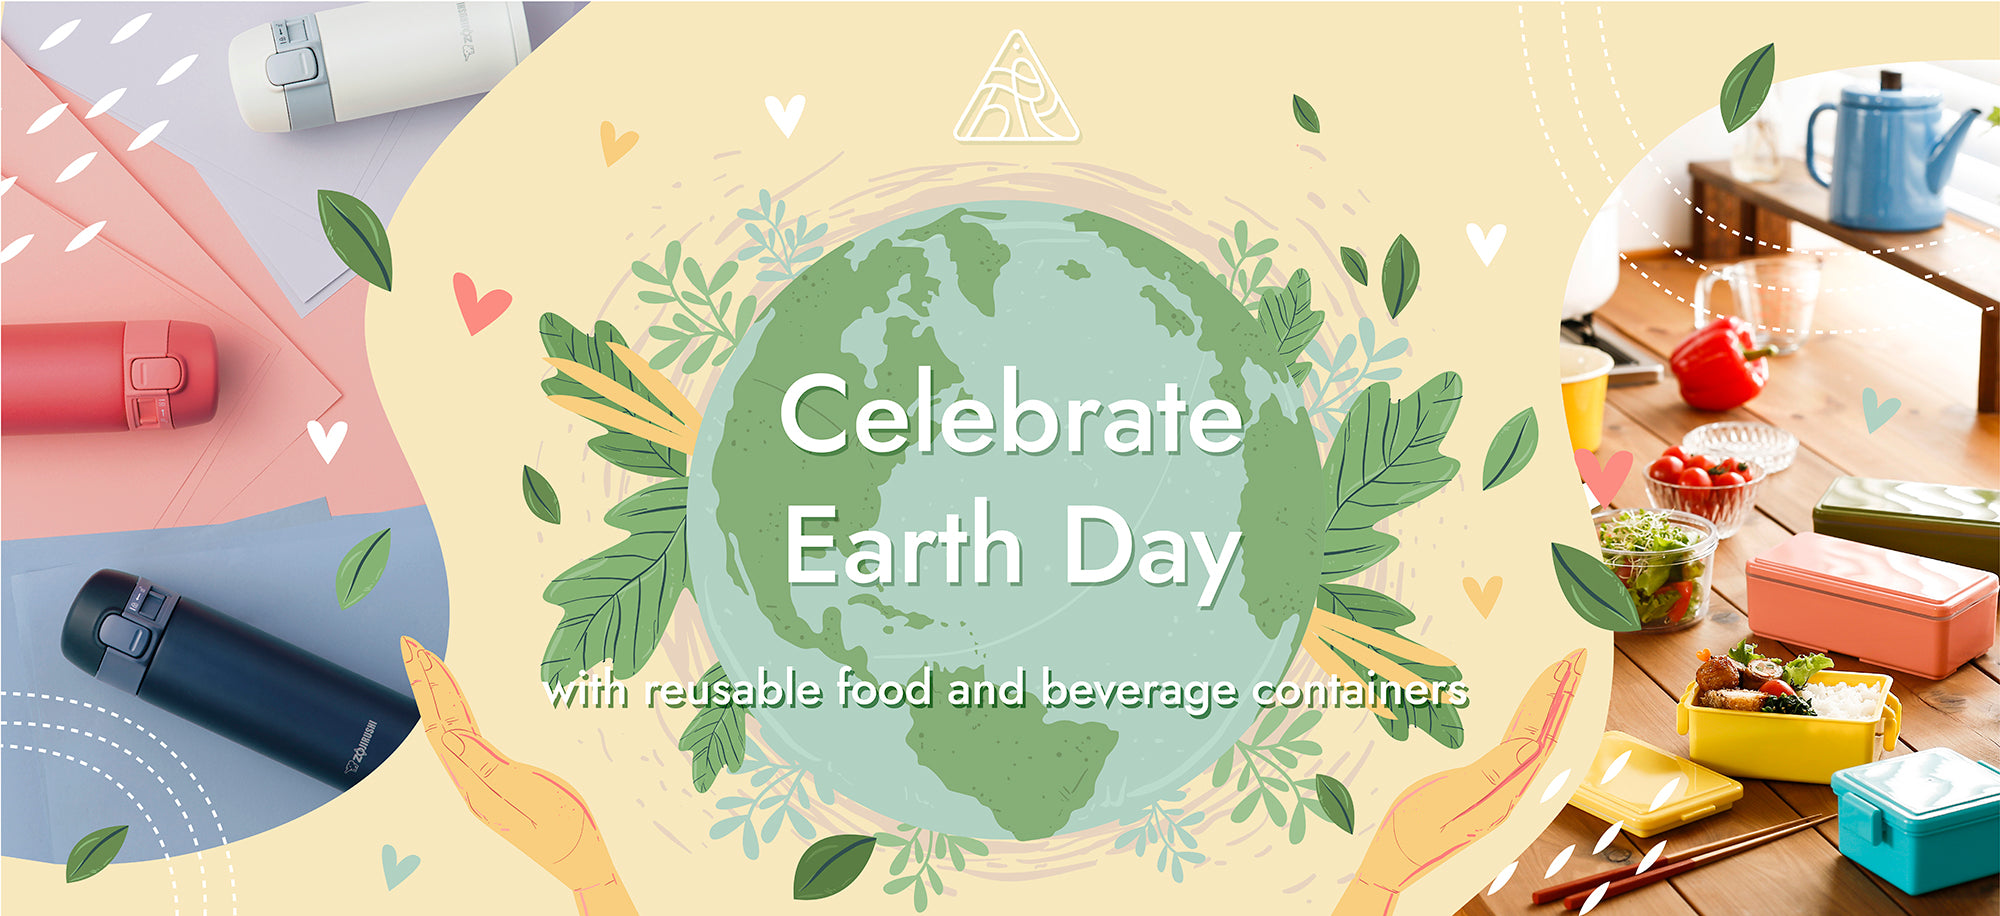 Celebrate Earth Day with Reusable Products